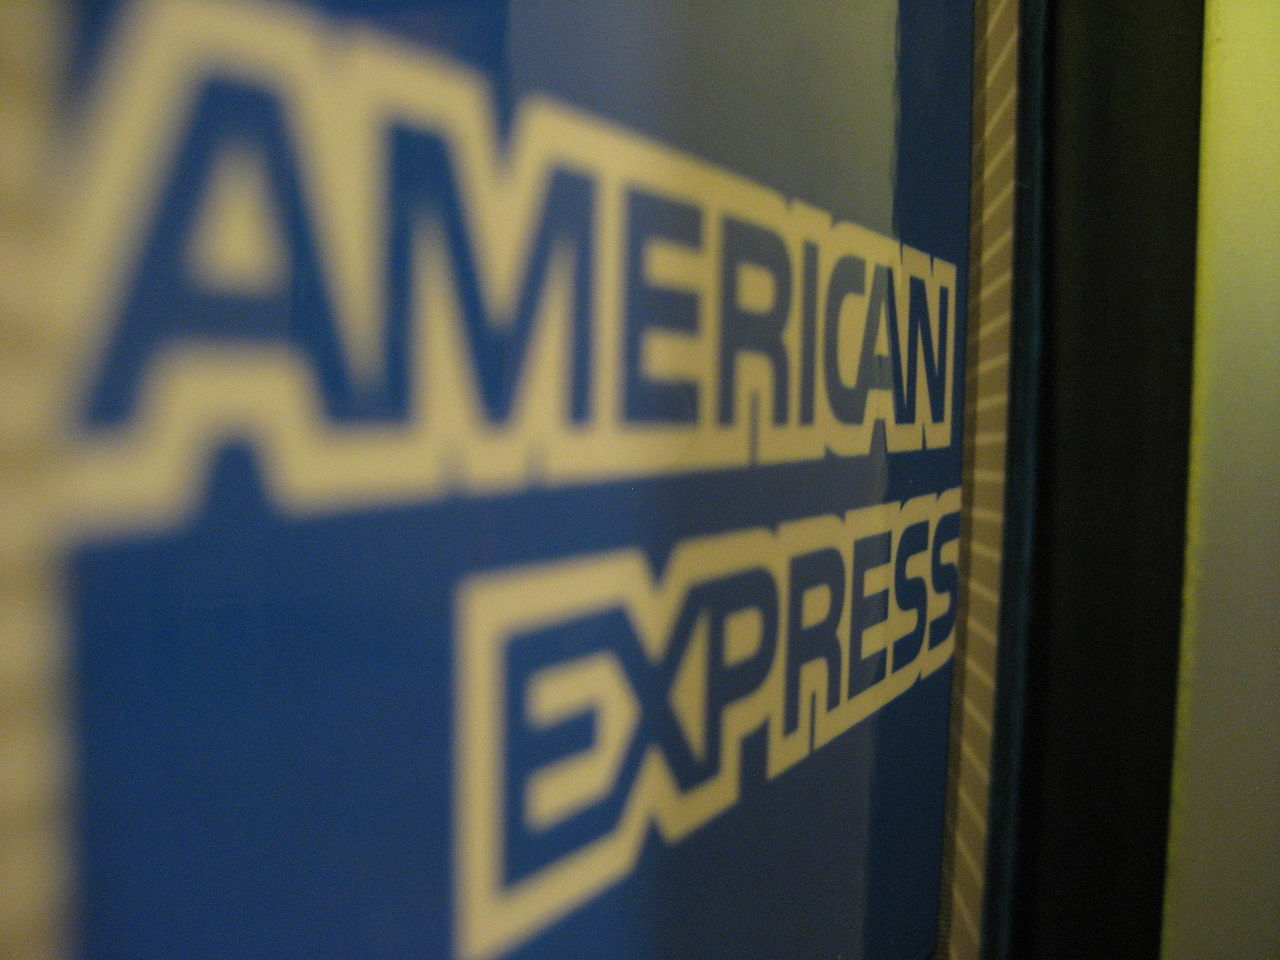 American Express logo by Marcus Quigmire wikimedia commons